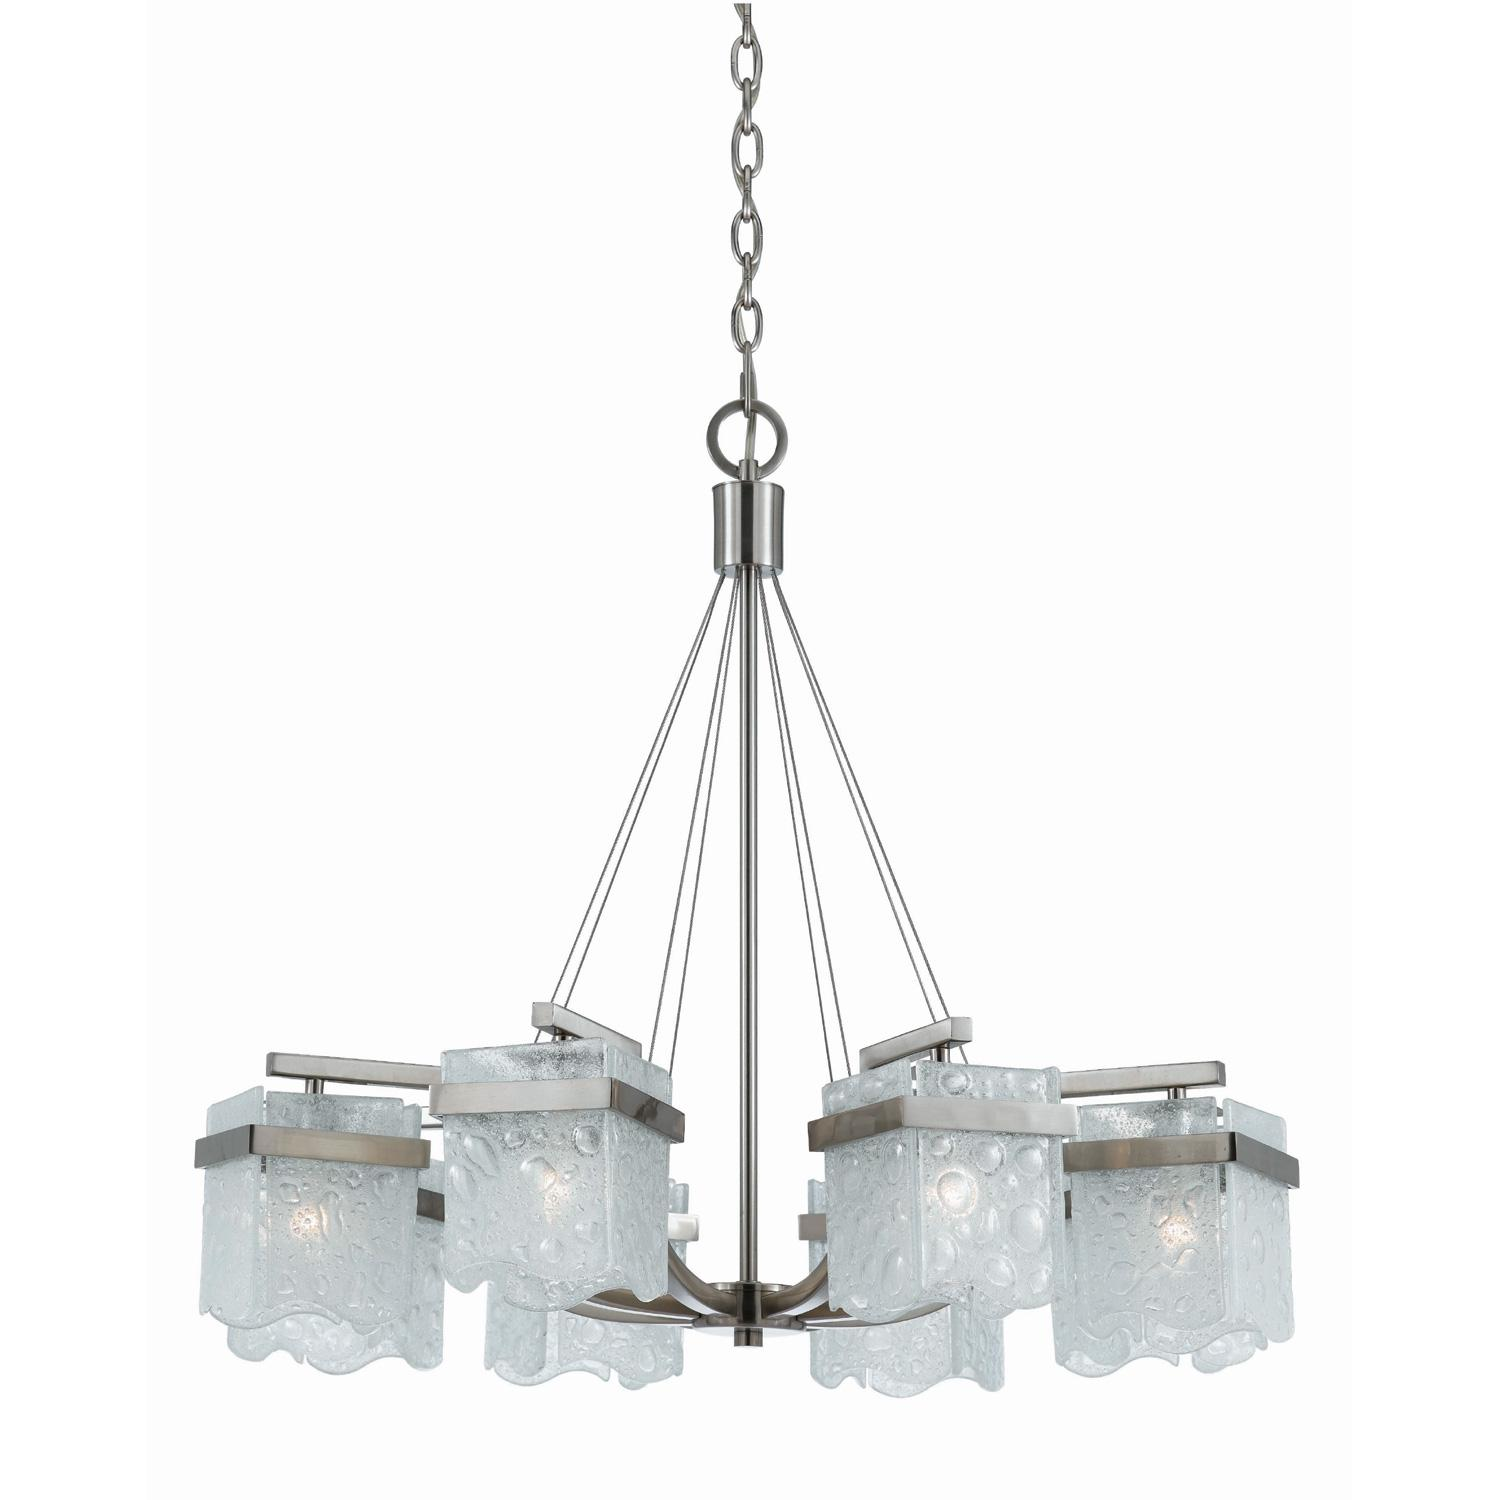 Arctic Ice 8-light Satin Nickel Chandelier